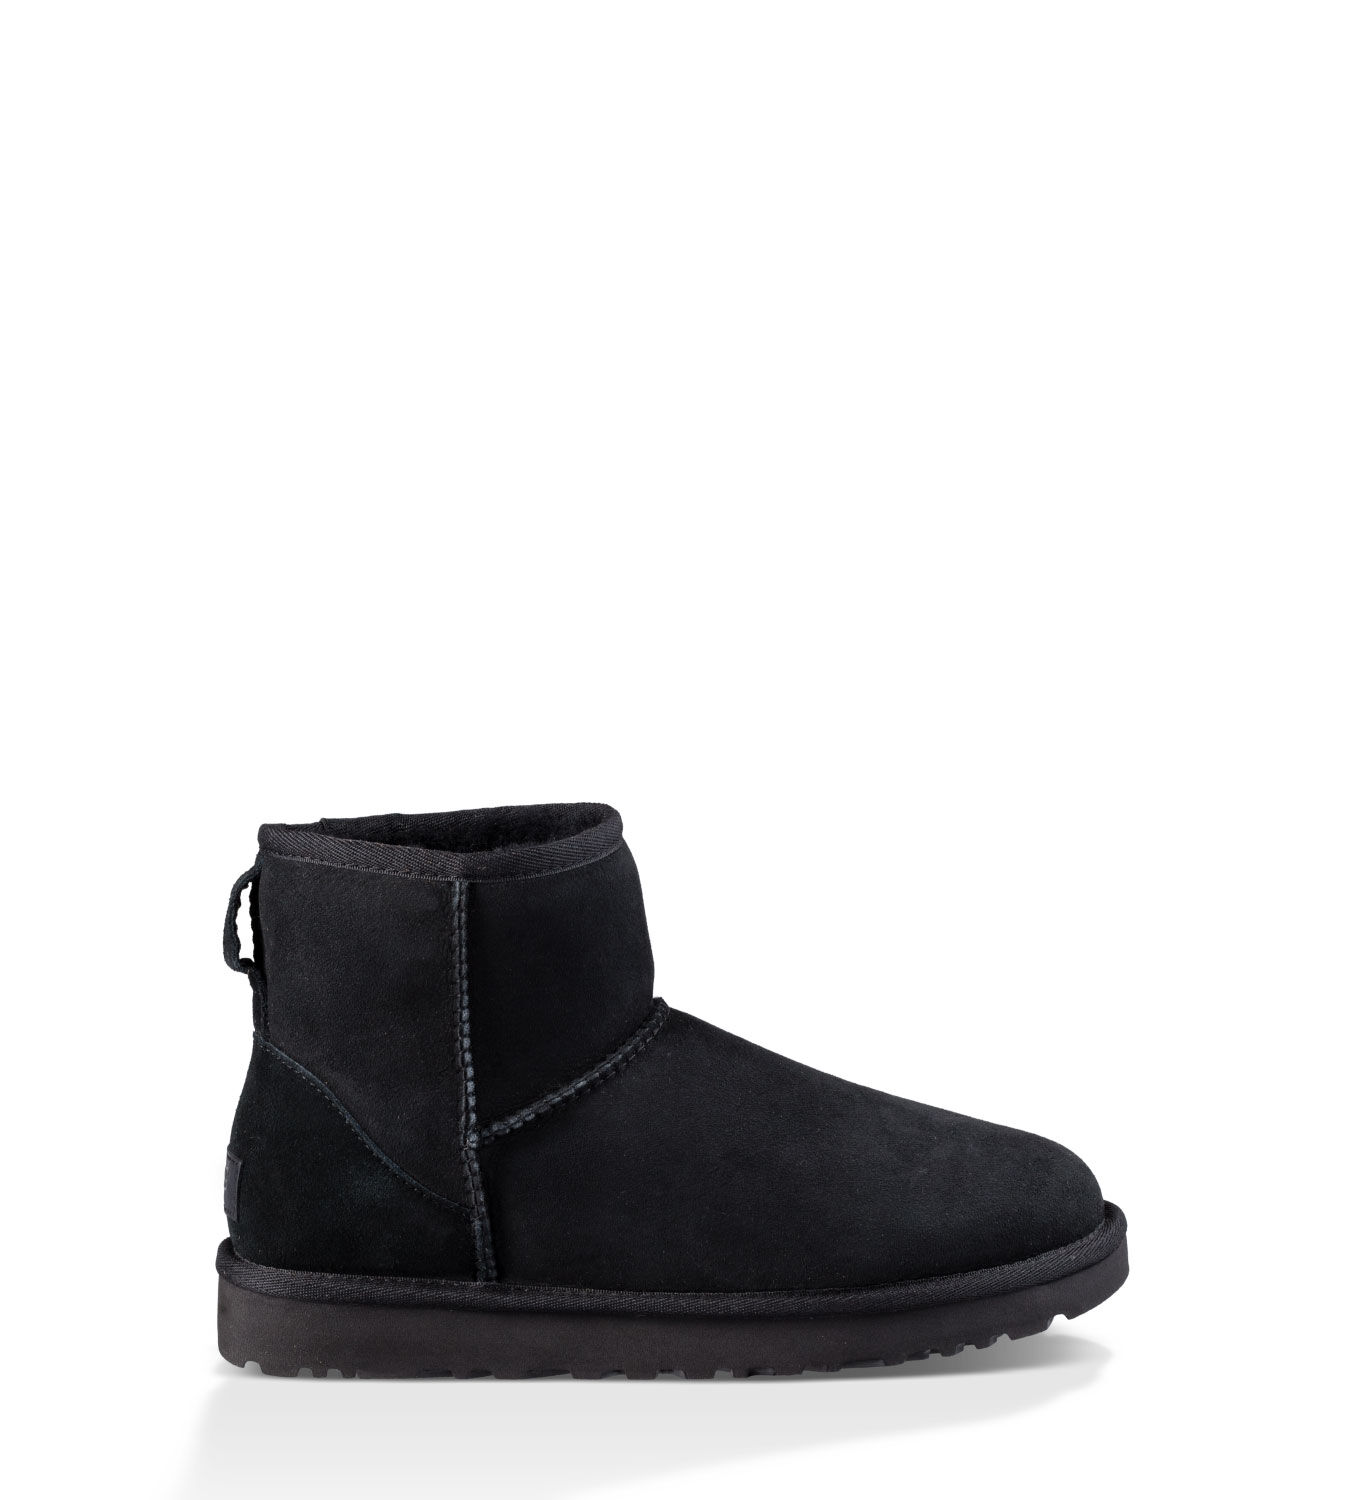 UGG Leather Ankle Boots aur2hgw